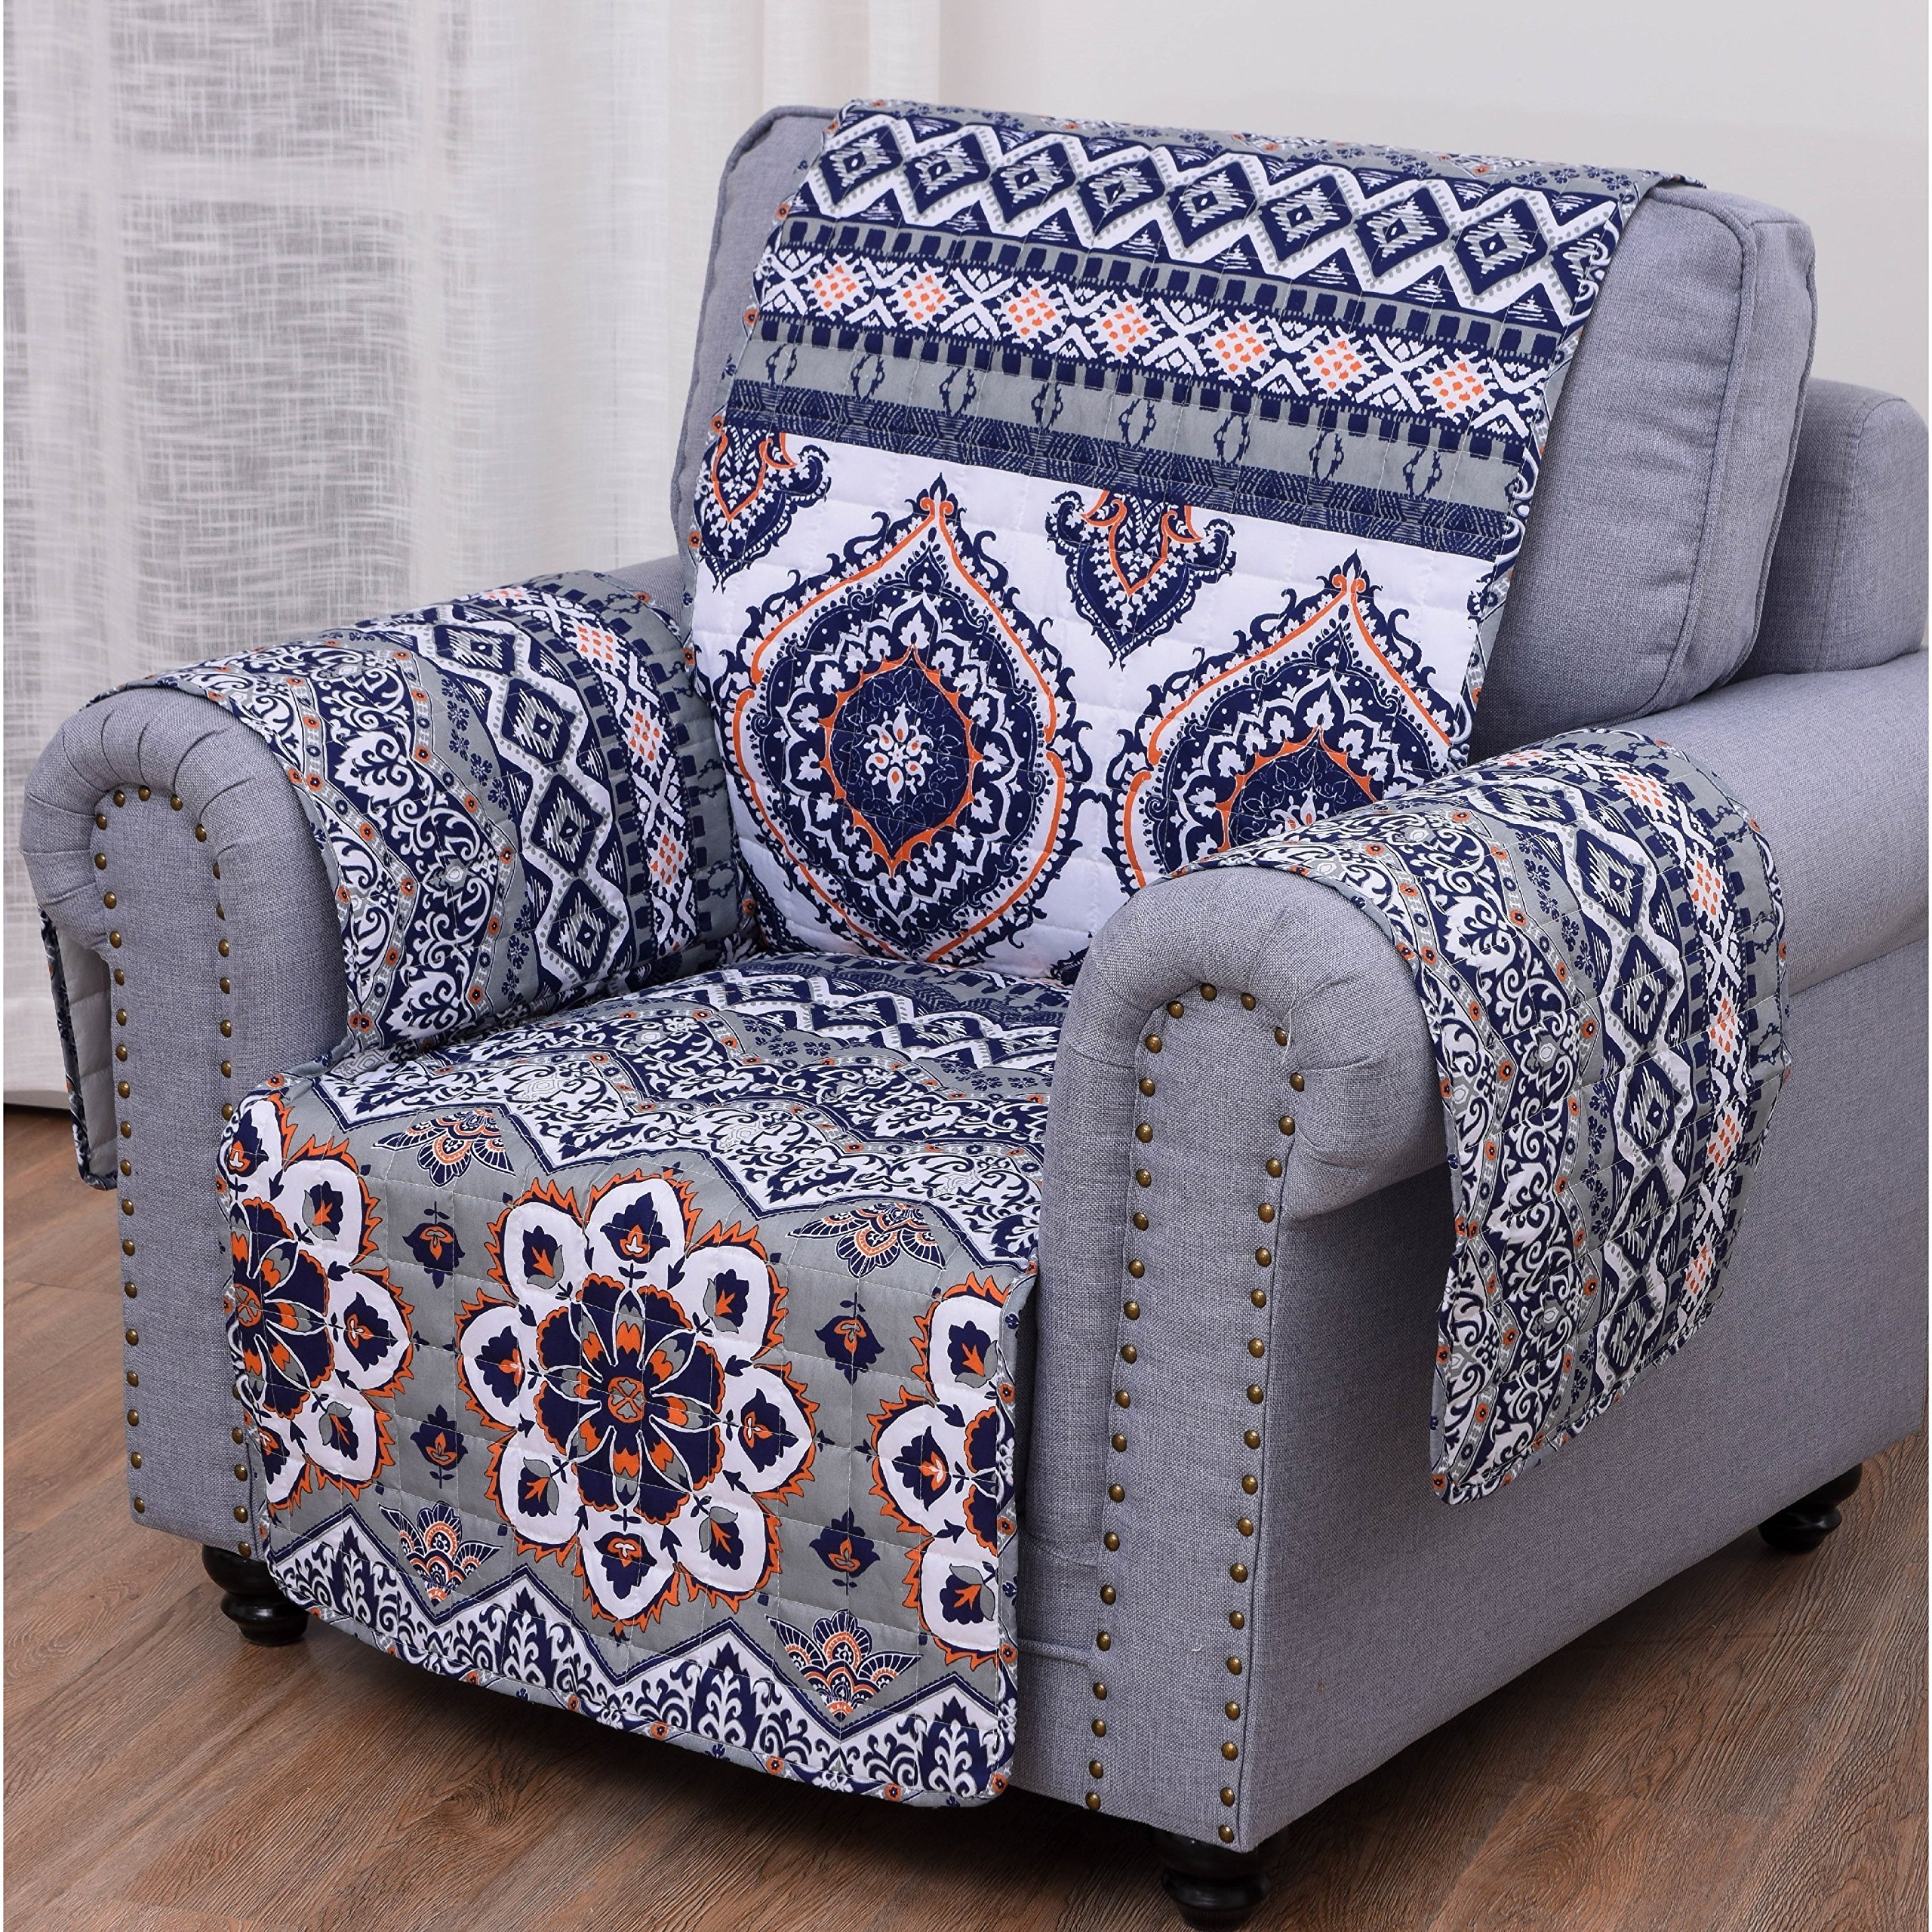 MN 1 Piece Blue White Paisley Theme Chair Protector, Gray Geometric Flower Pattern Couch Protection Flowers Floral Leaves Furniture Protection Cover Pets Animals Covers Nature, Polyester